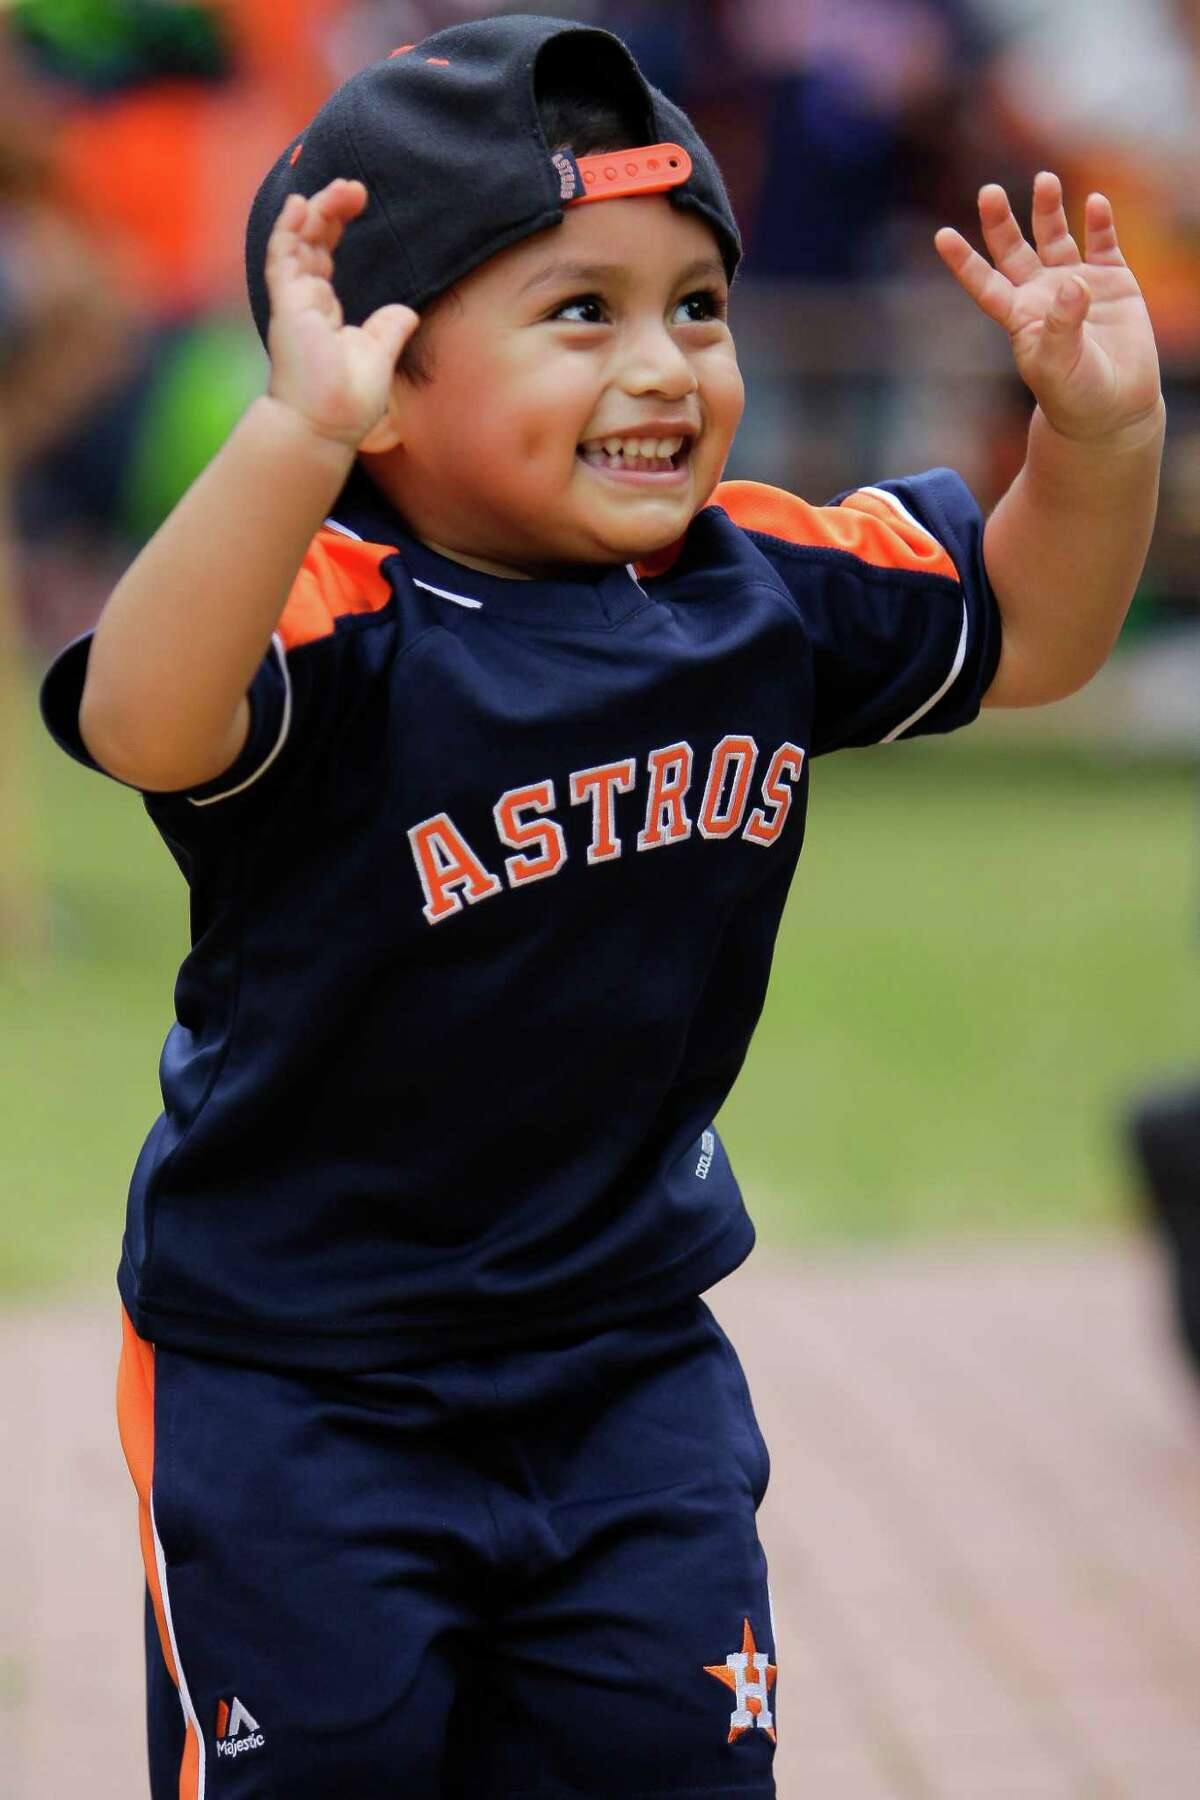 Nathaniel Munoz, 2, prepares to high five his mother after playing corn hole during the Opening Day Street Fest as the Astros open their season at home against the Royals at Minute Maid ParkonMonday, April 11, 2016 in Houston.